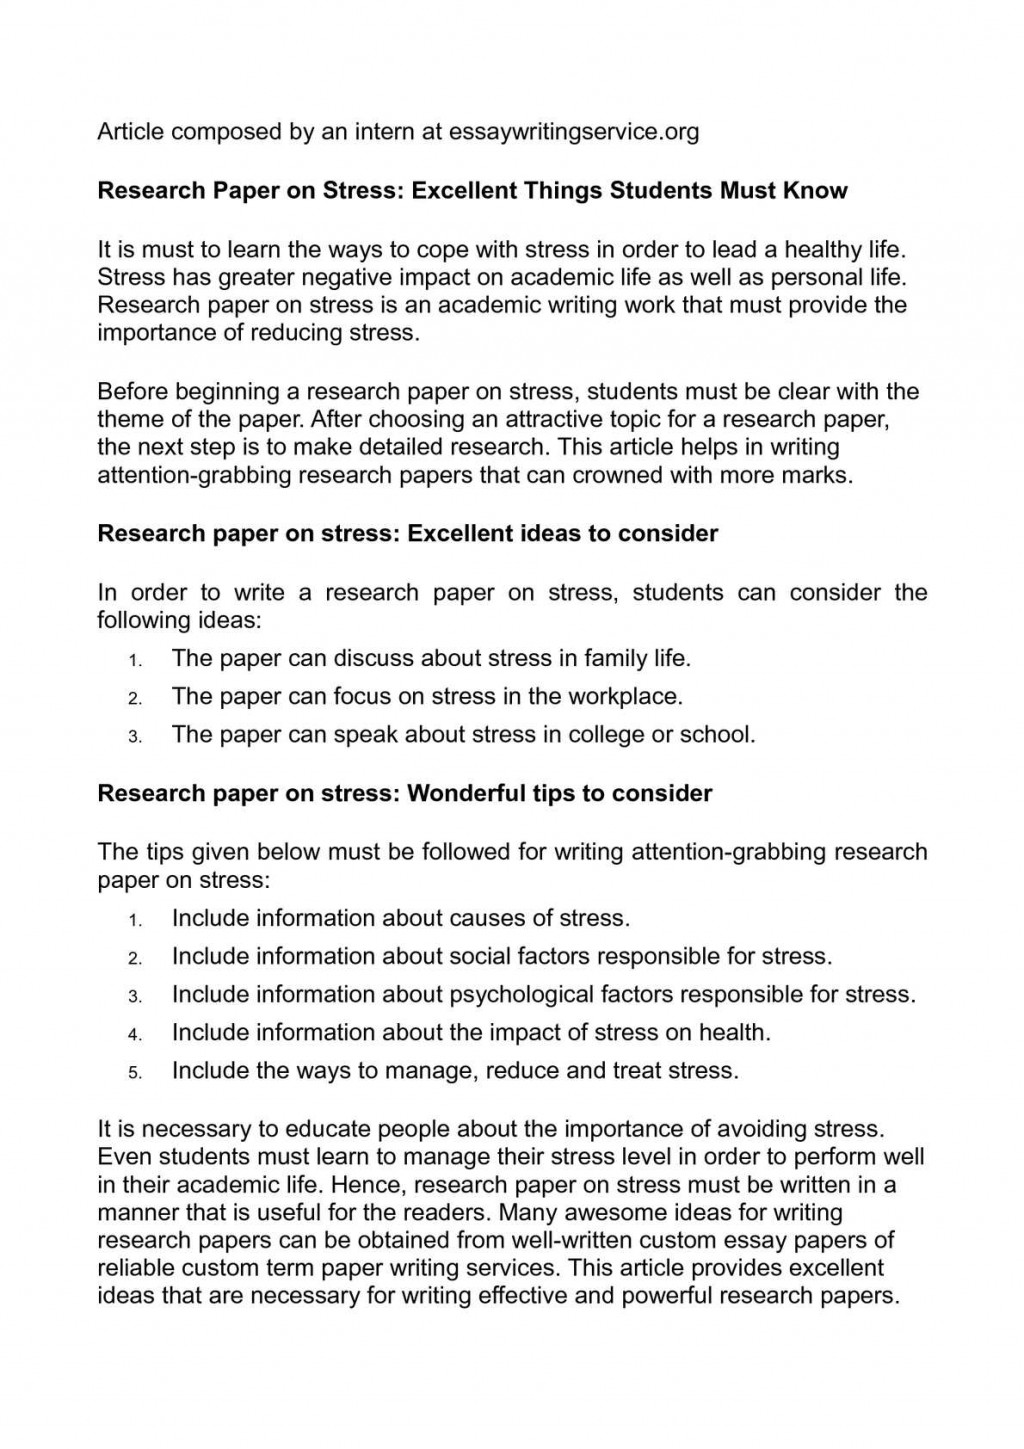 016 Health Topics To Write Research Paper On Breathtaking A Large